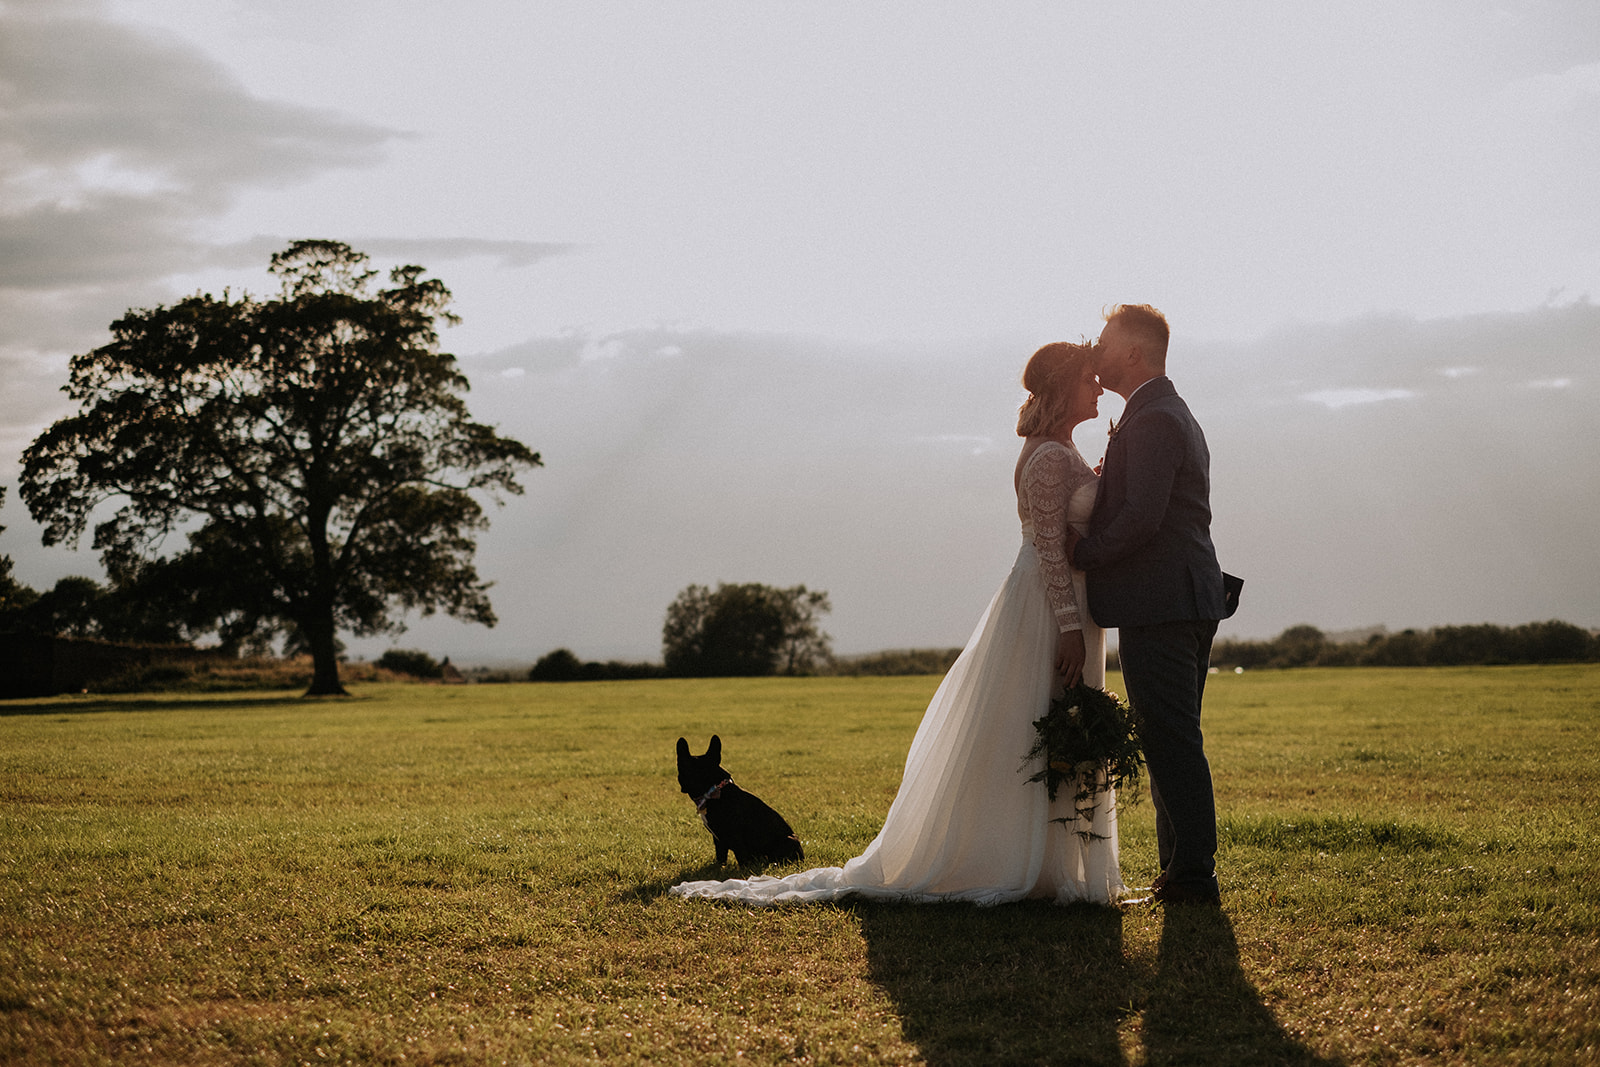 Cattows Farm Wedding with bride and groom enjoying a walk around the farm with the family dog